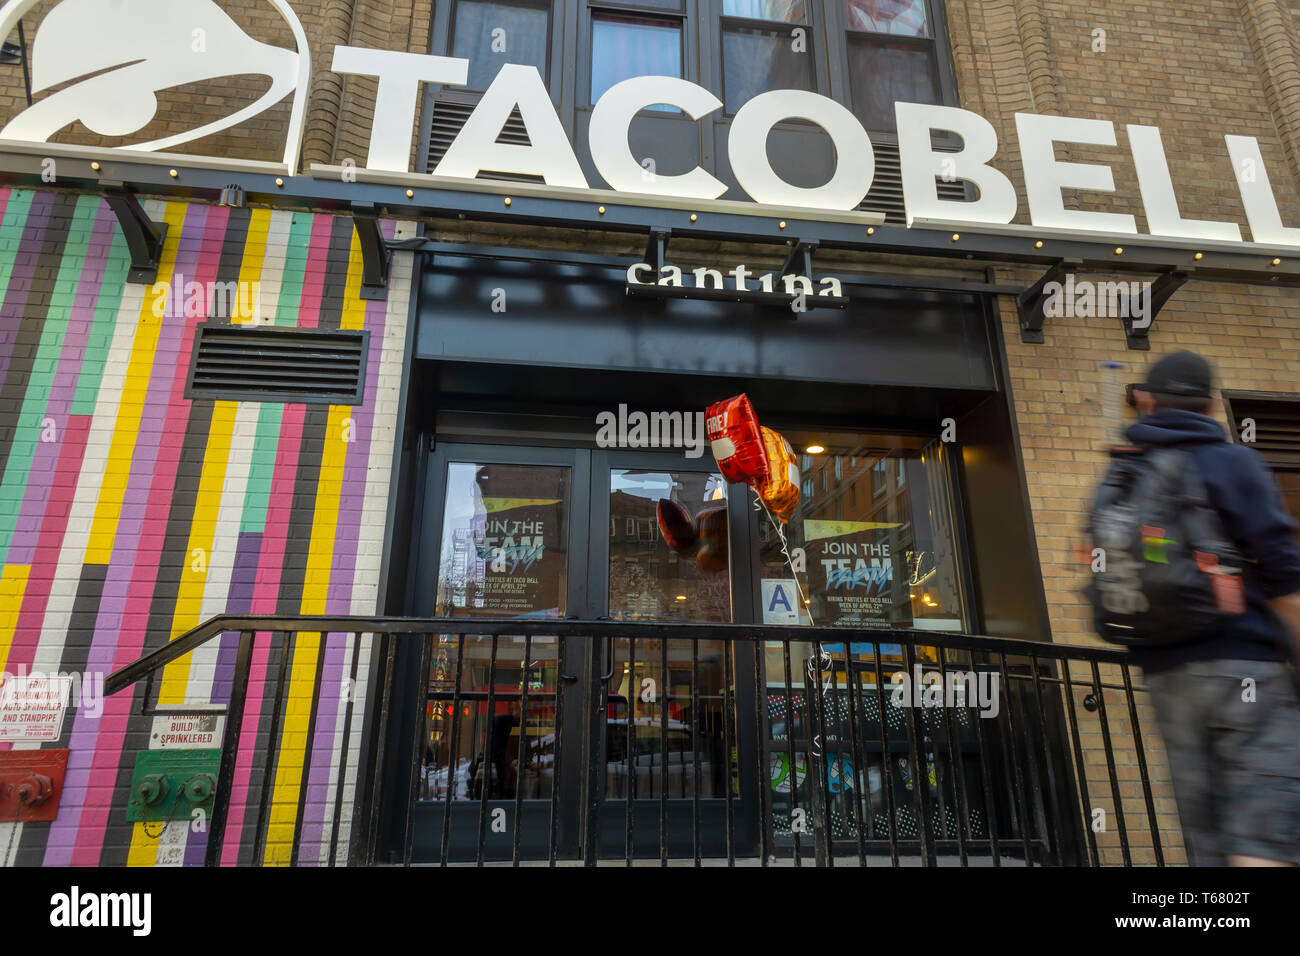 Taco Bell Storefront Stock Photos & Taco Bell Storefront